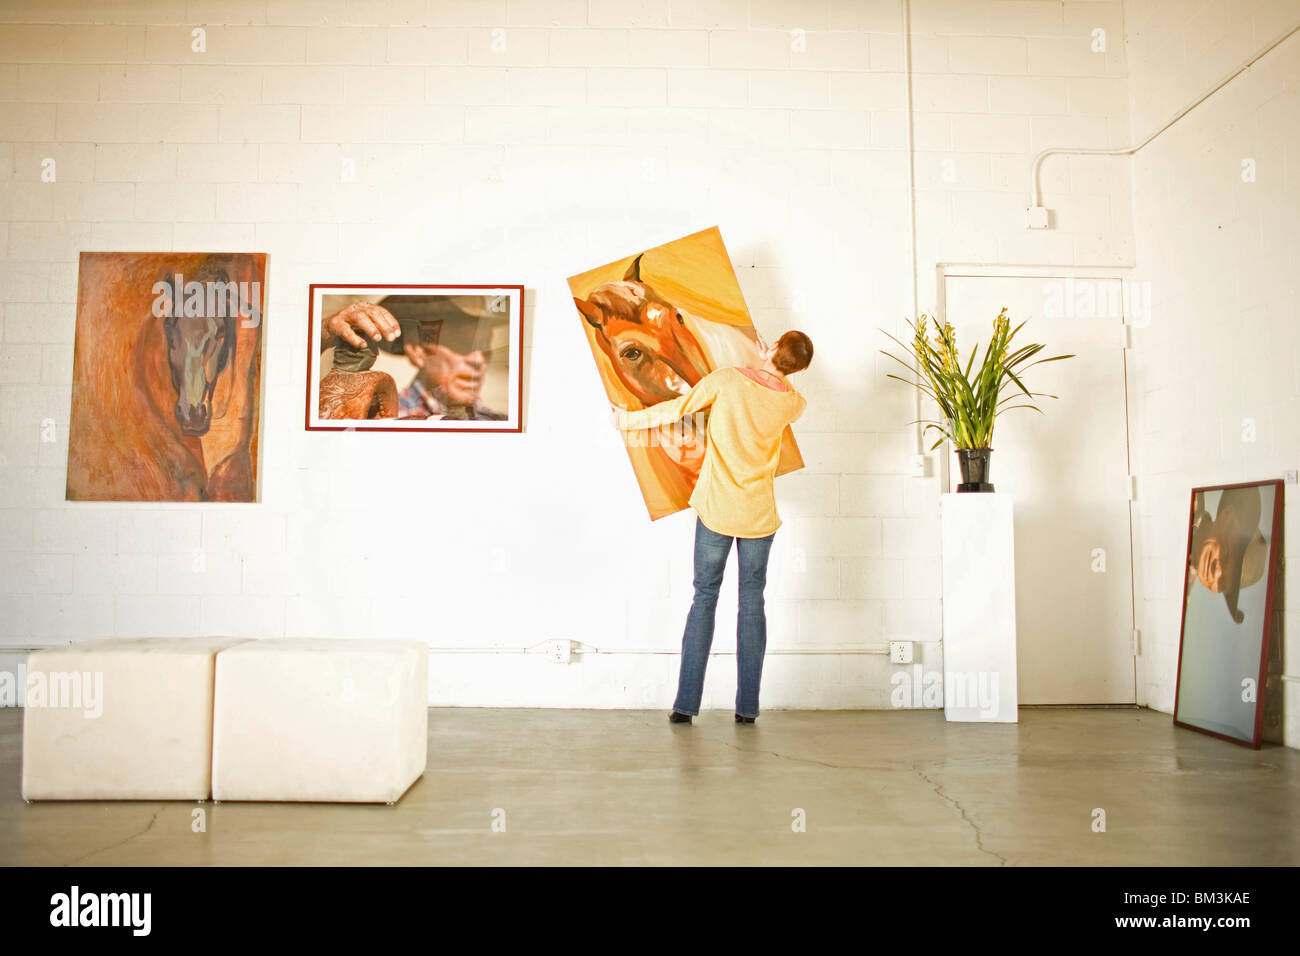 Owner hanging art in gallery - Stock Image